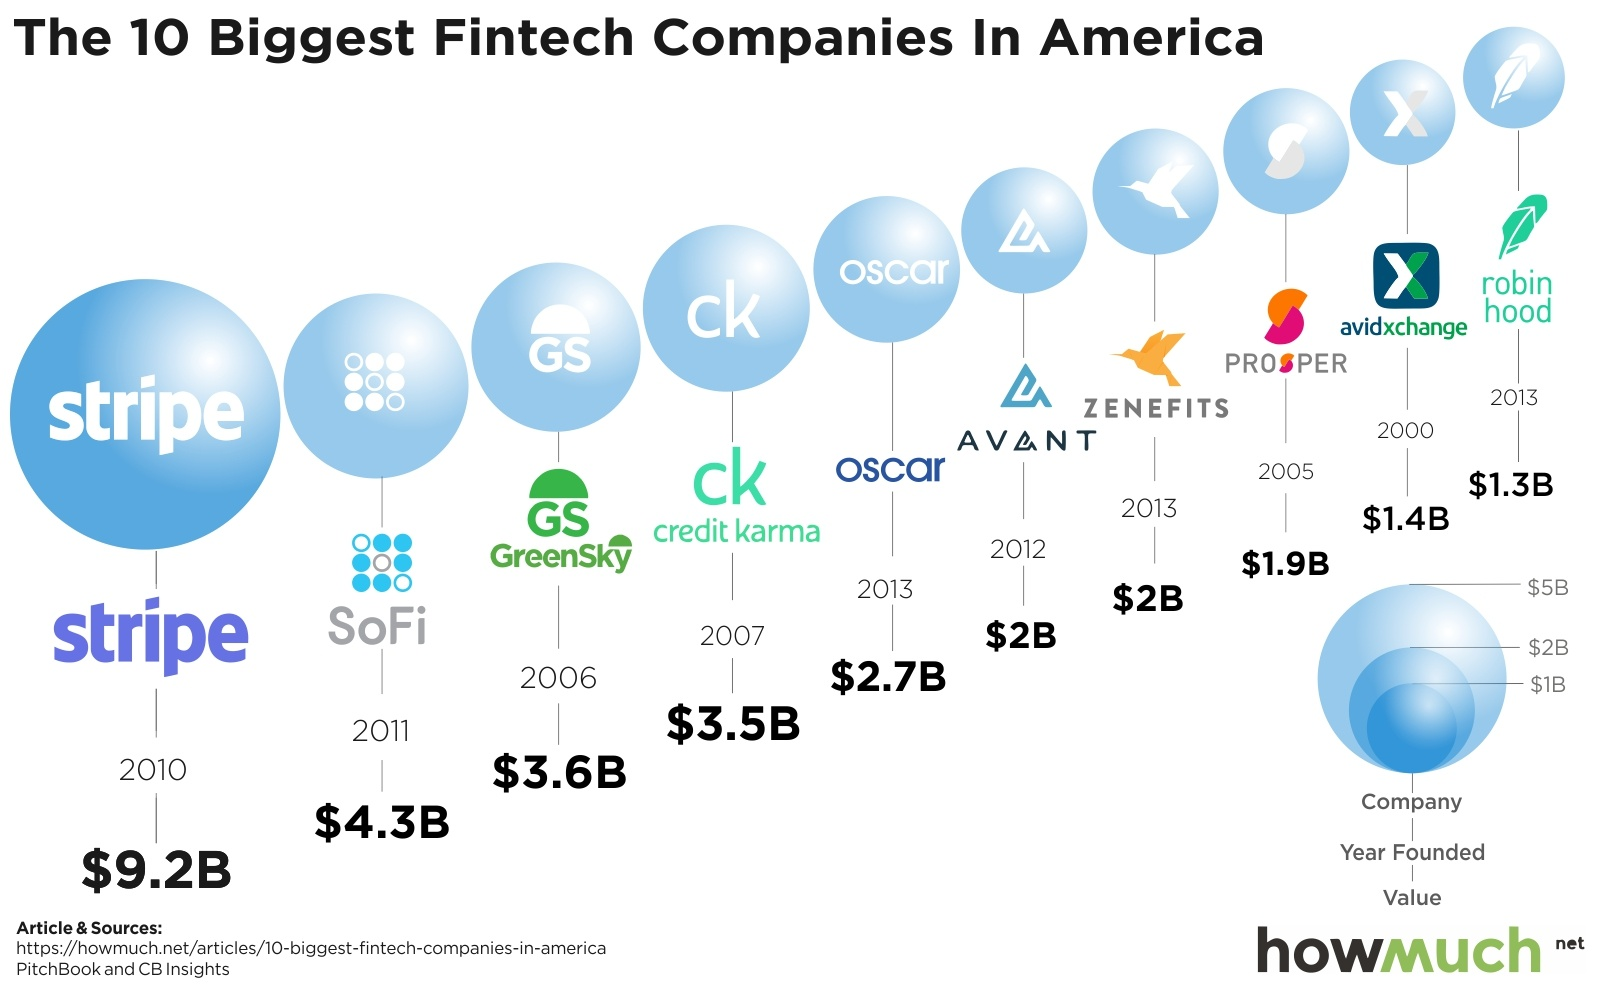 The Most Valuable Fintech Companies, in One Chart